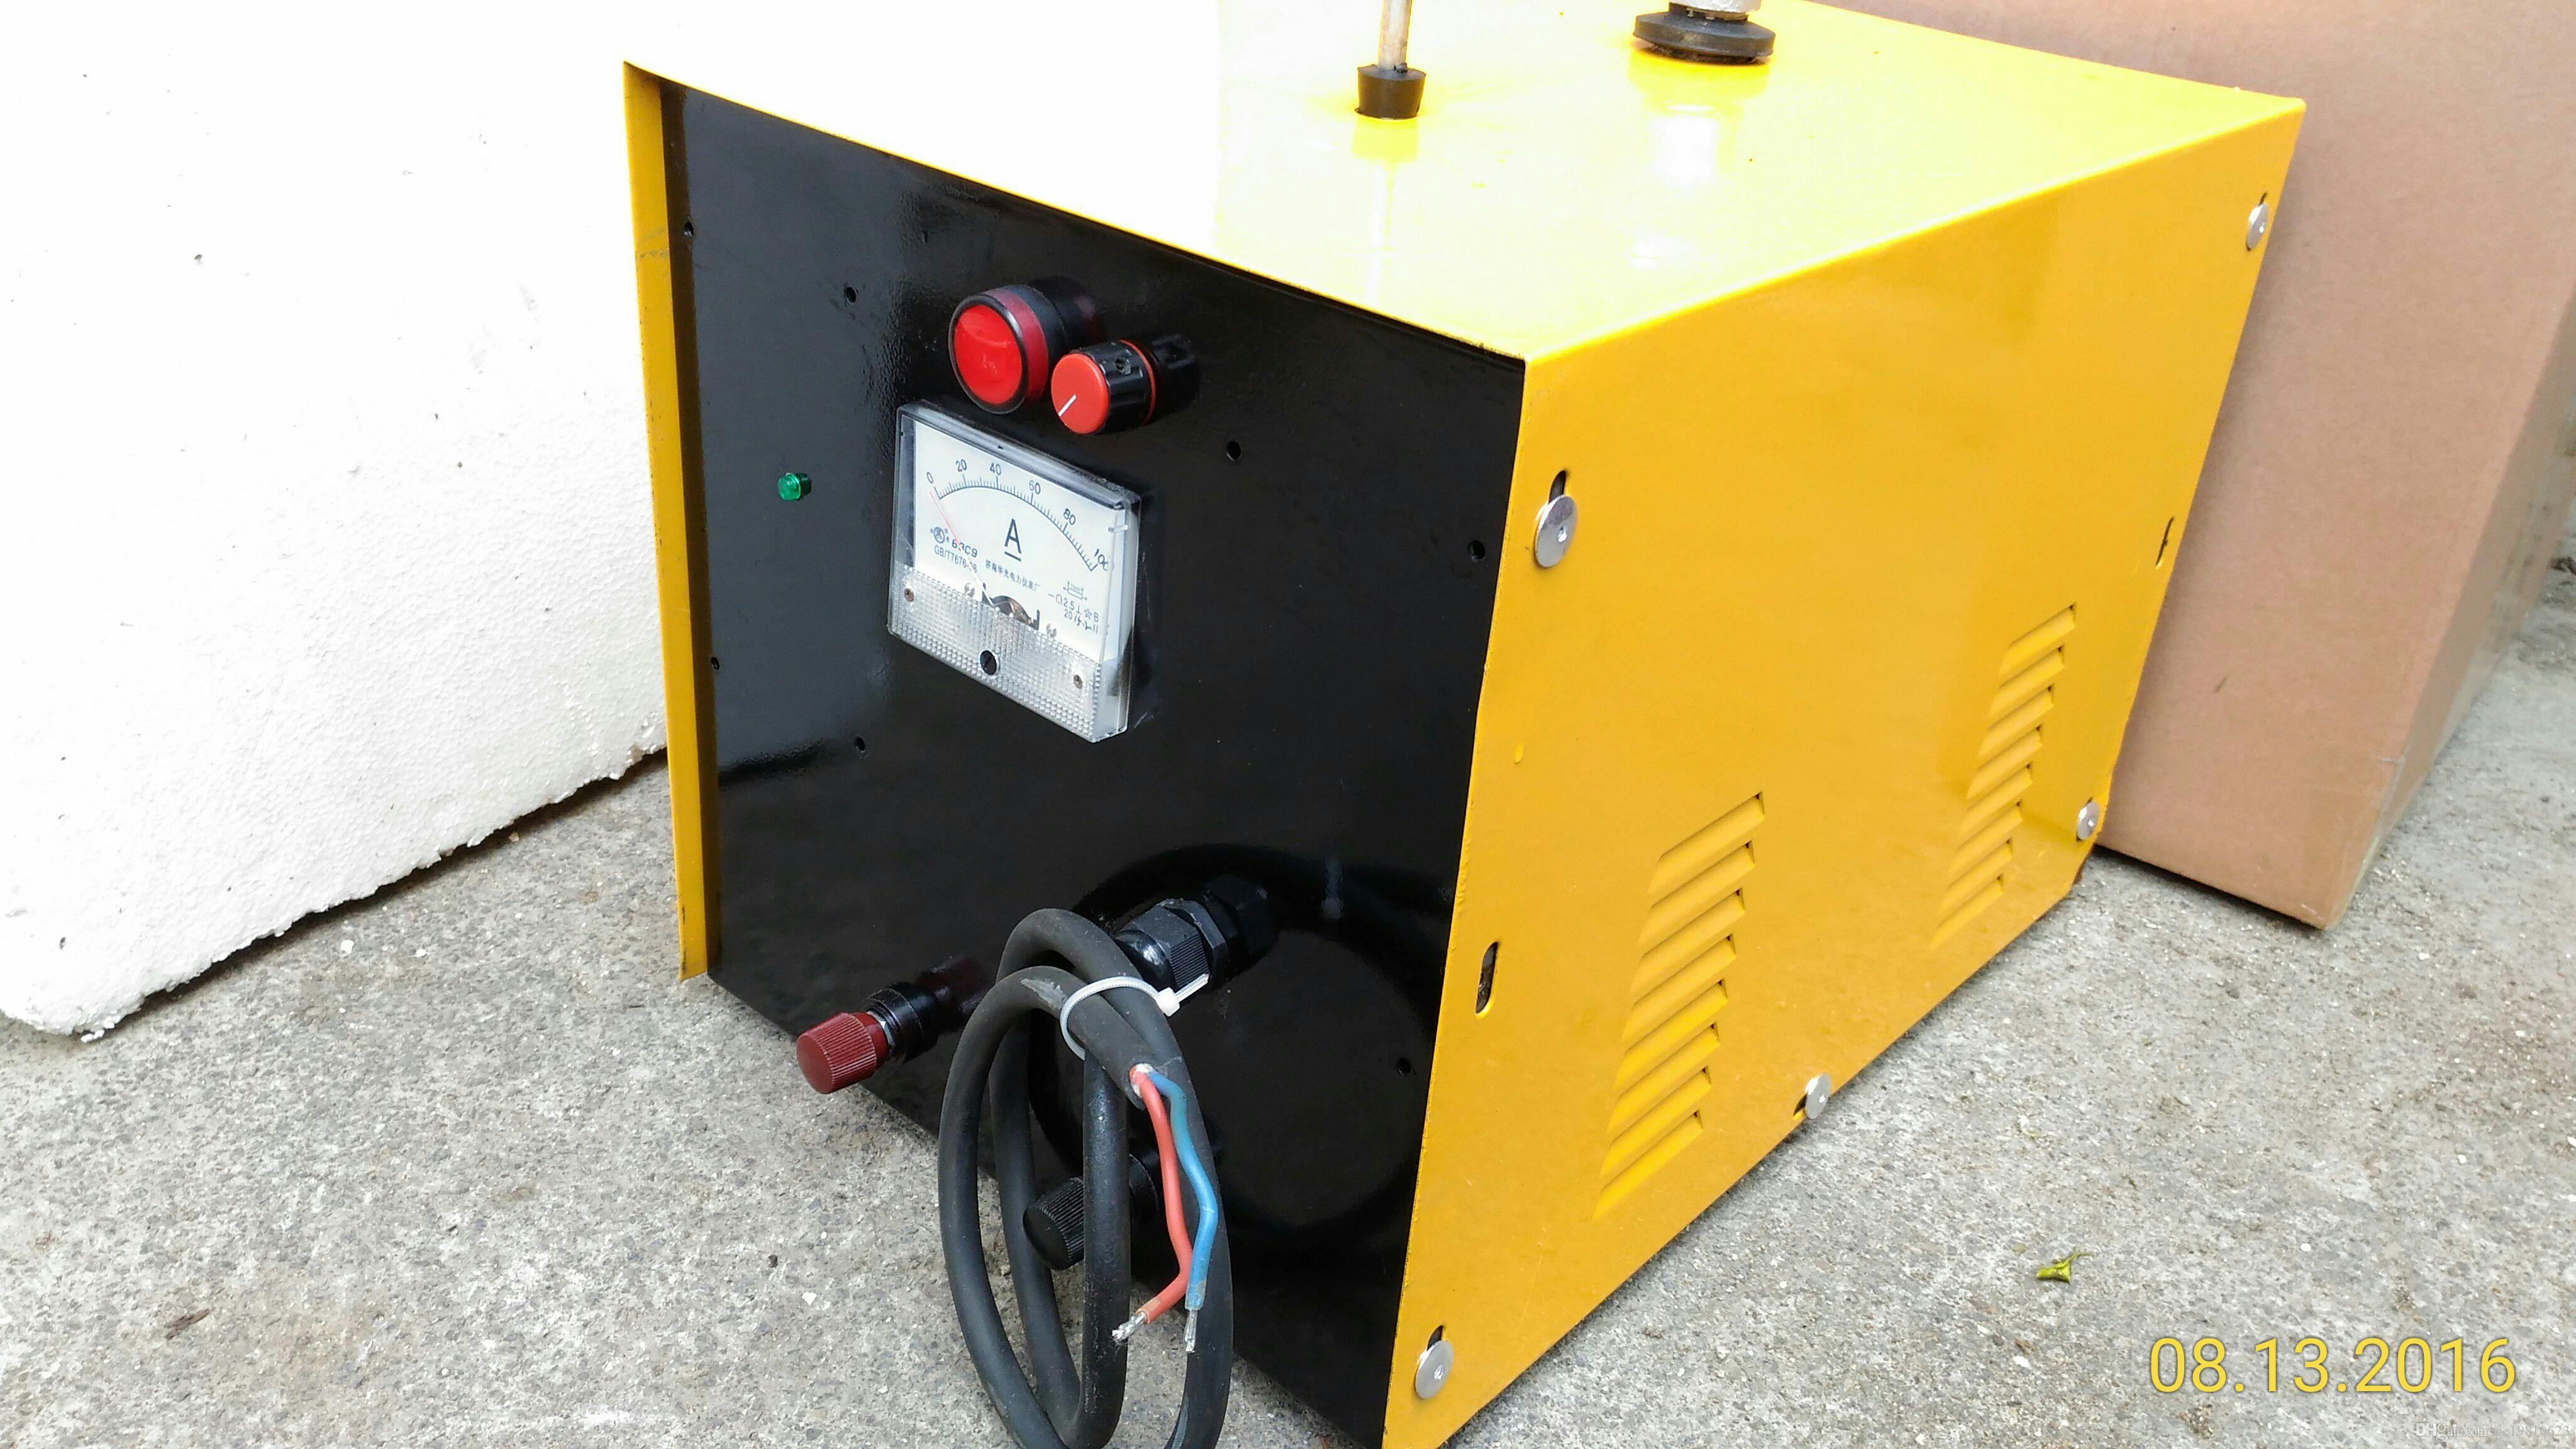 2018 Pwm Hydrogen Booster Hho Generator Carbon Cleaning & Fuel